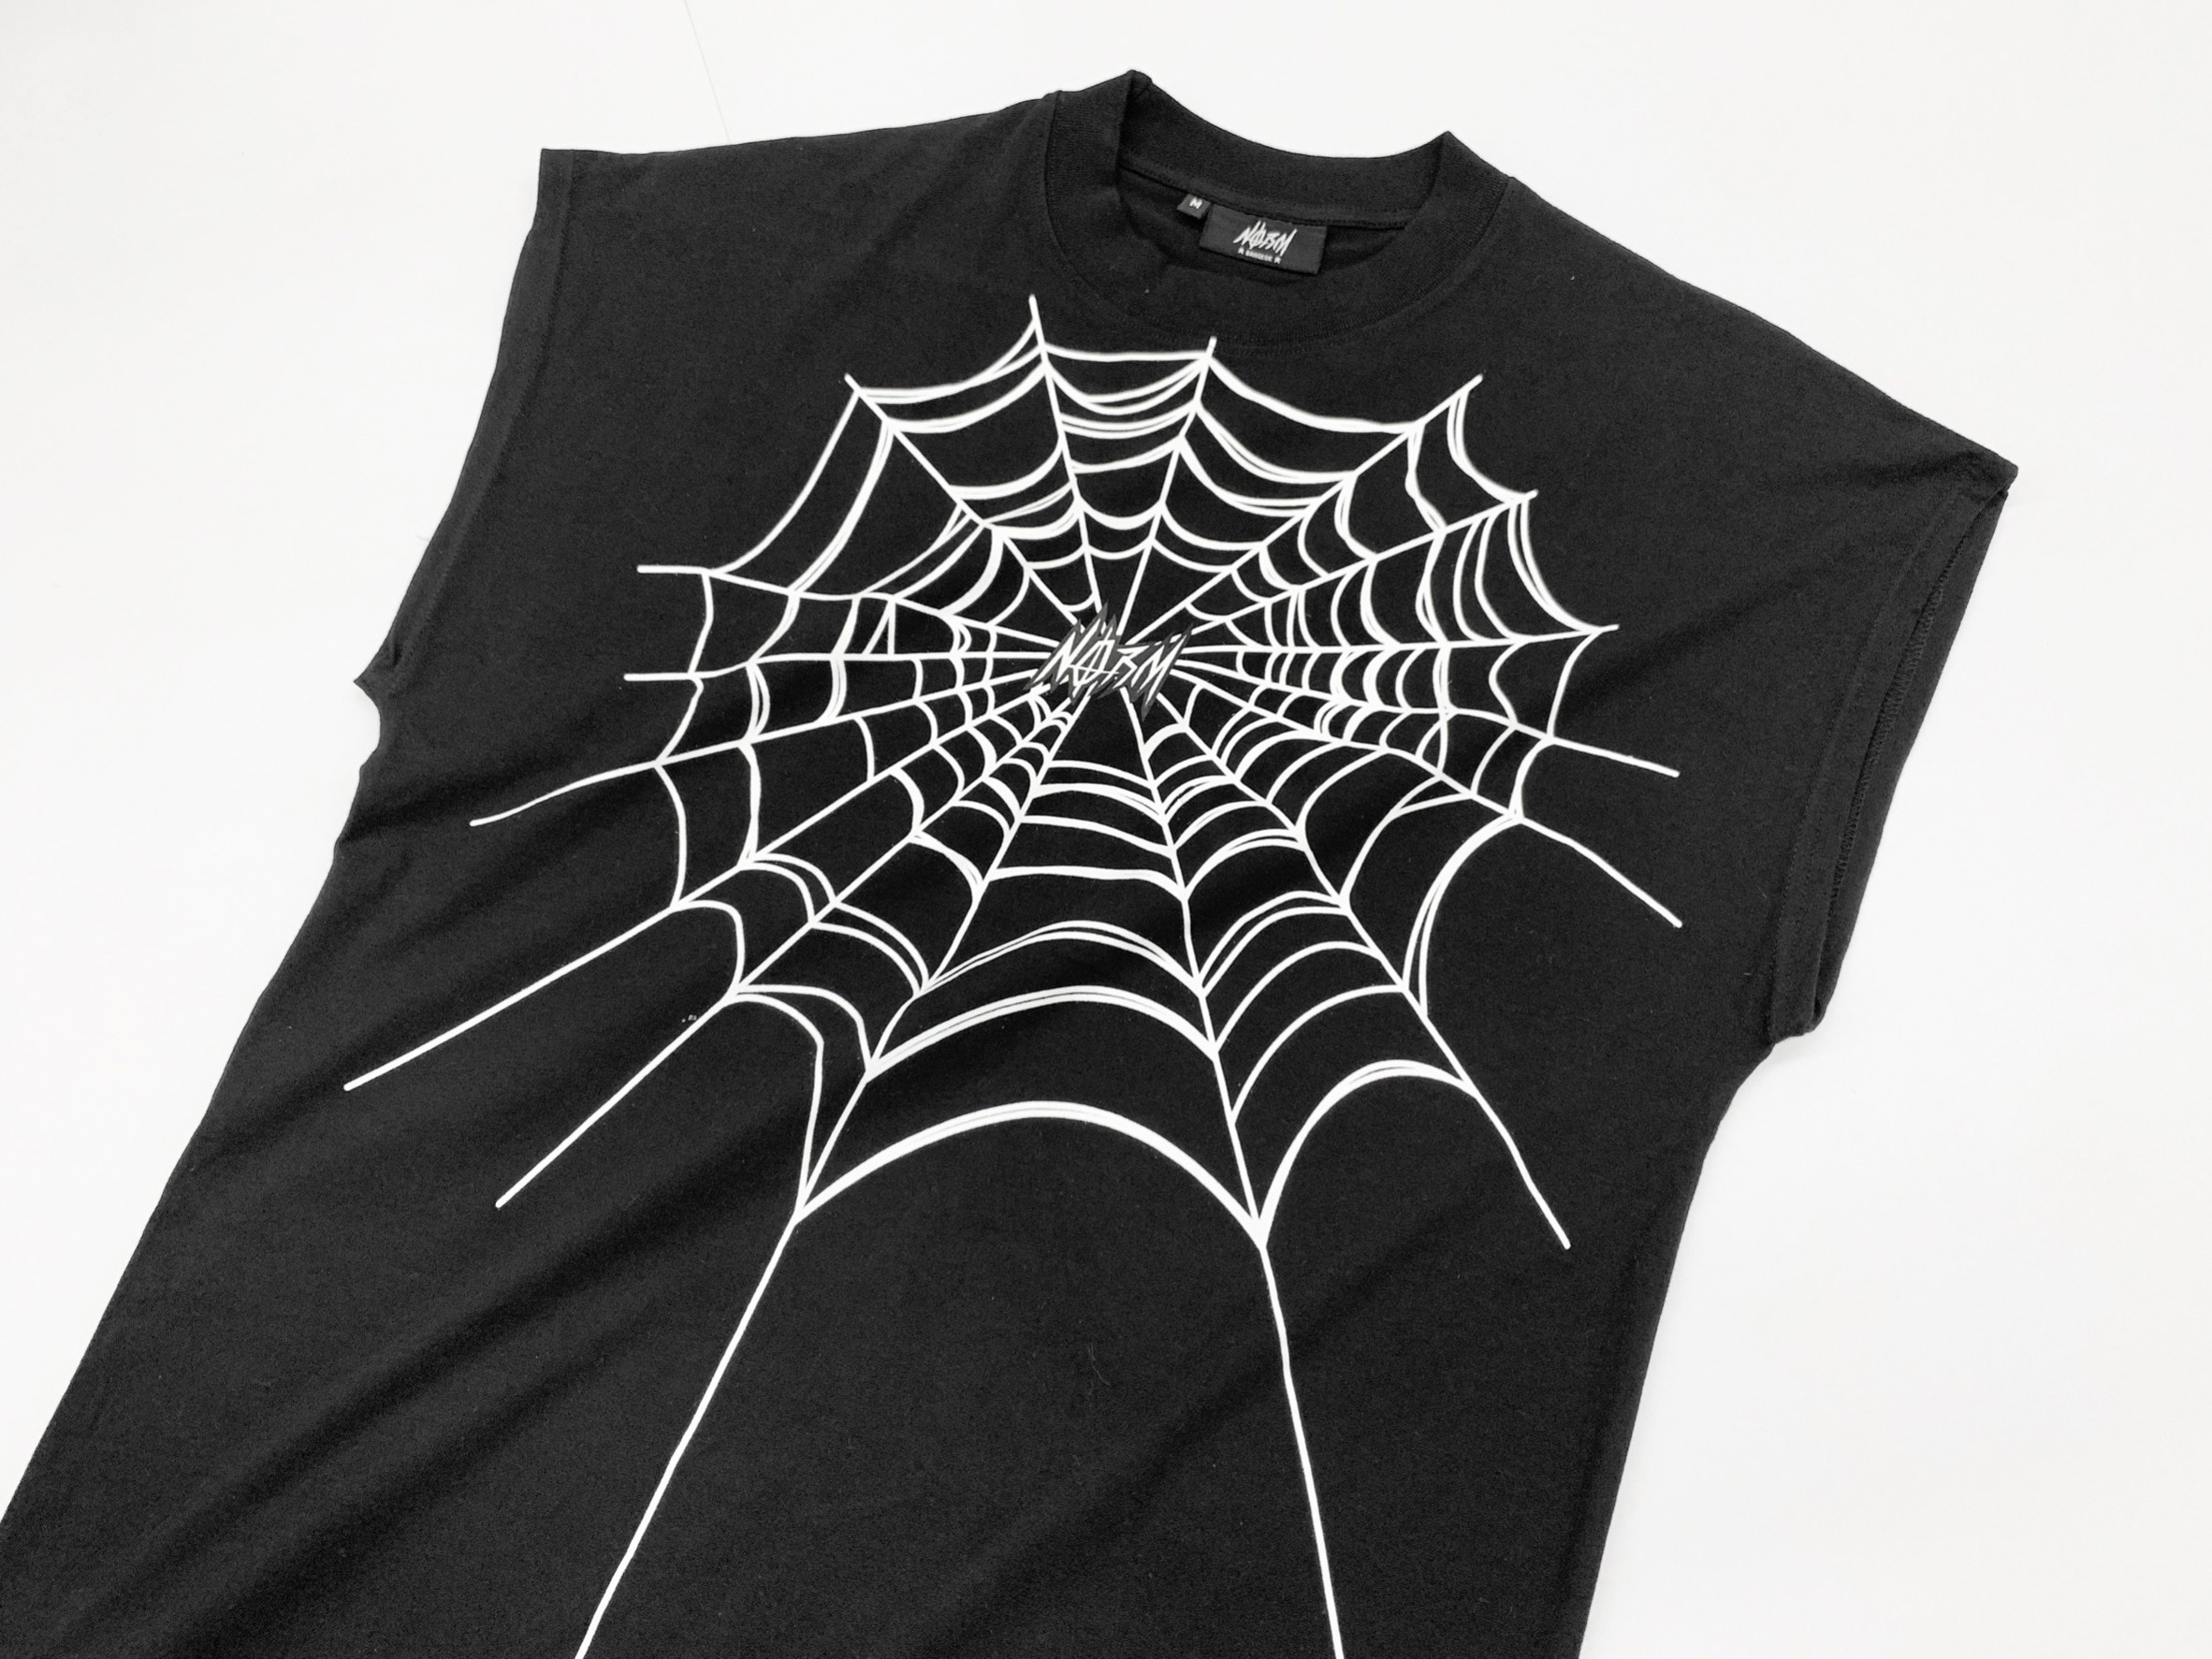 NORM SPIDER WEB